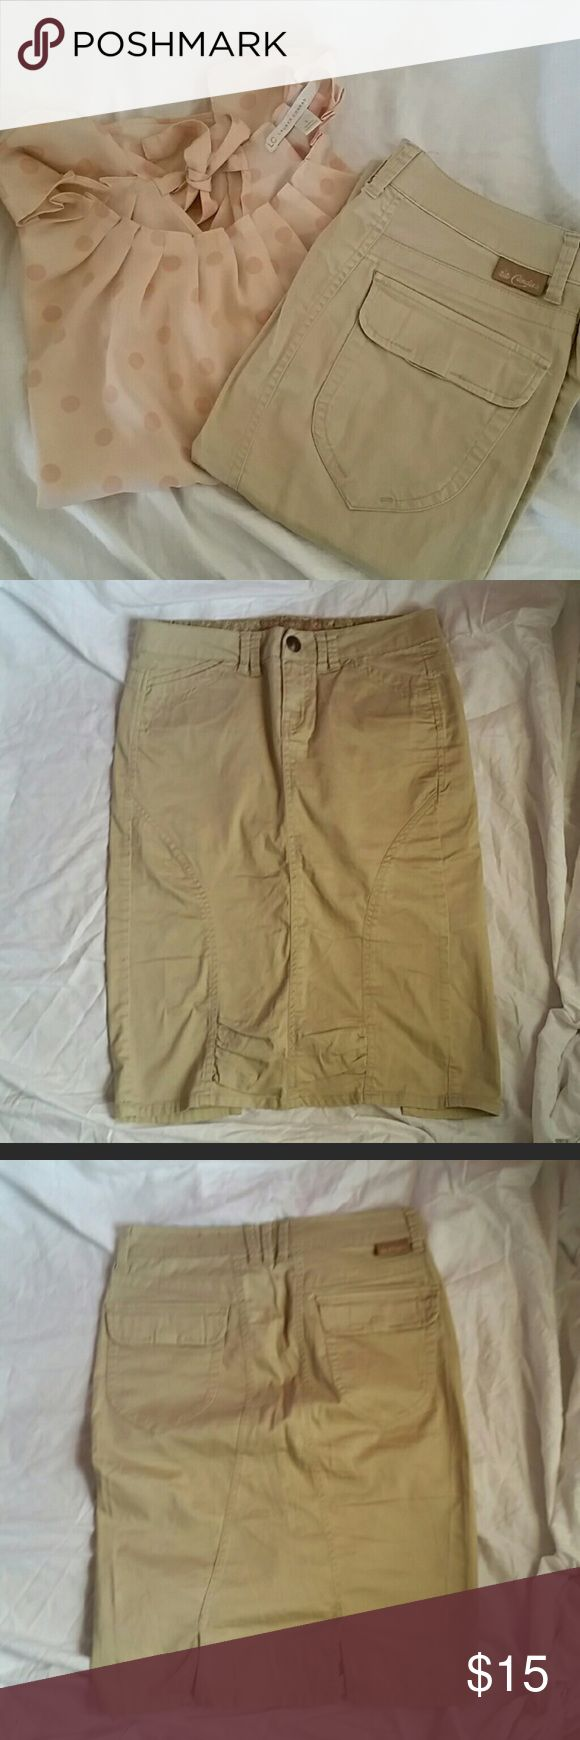 "Khaki stretch pencil skirt. -22"" long, about 17"" across, great condition Skirts Pencil"